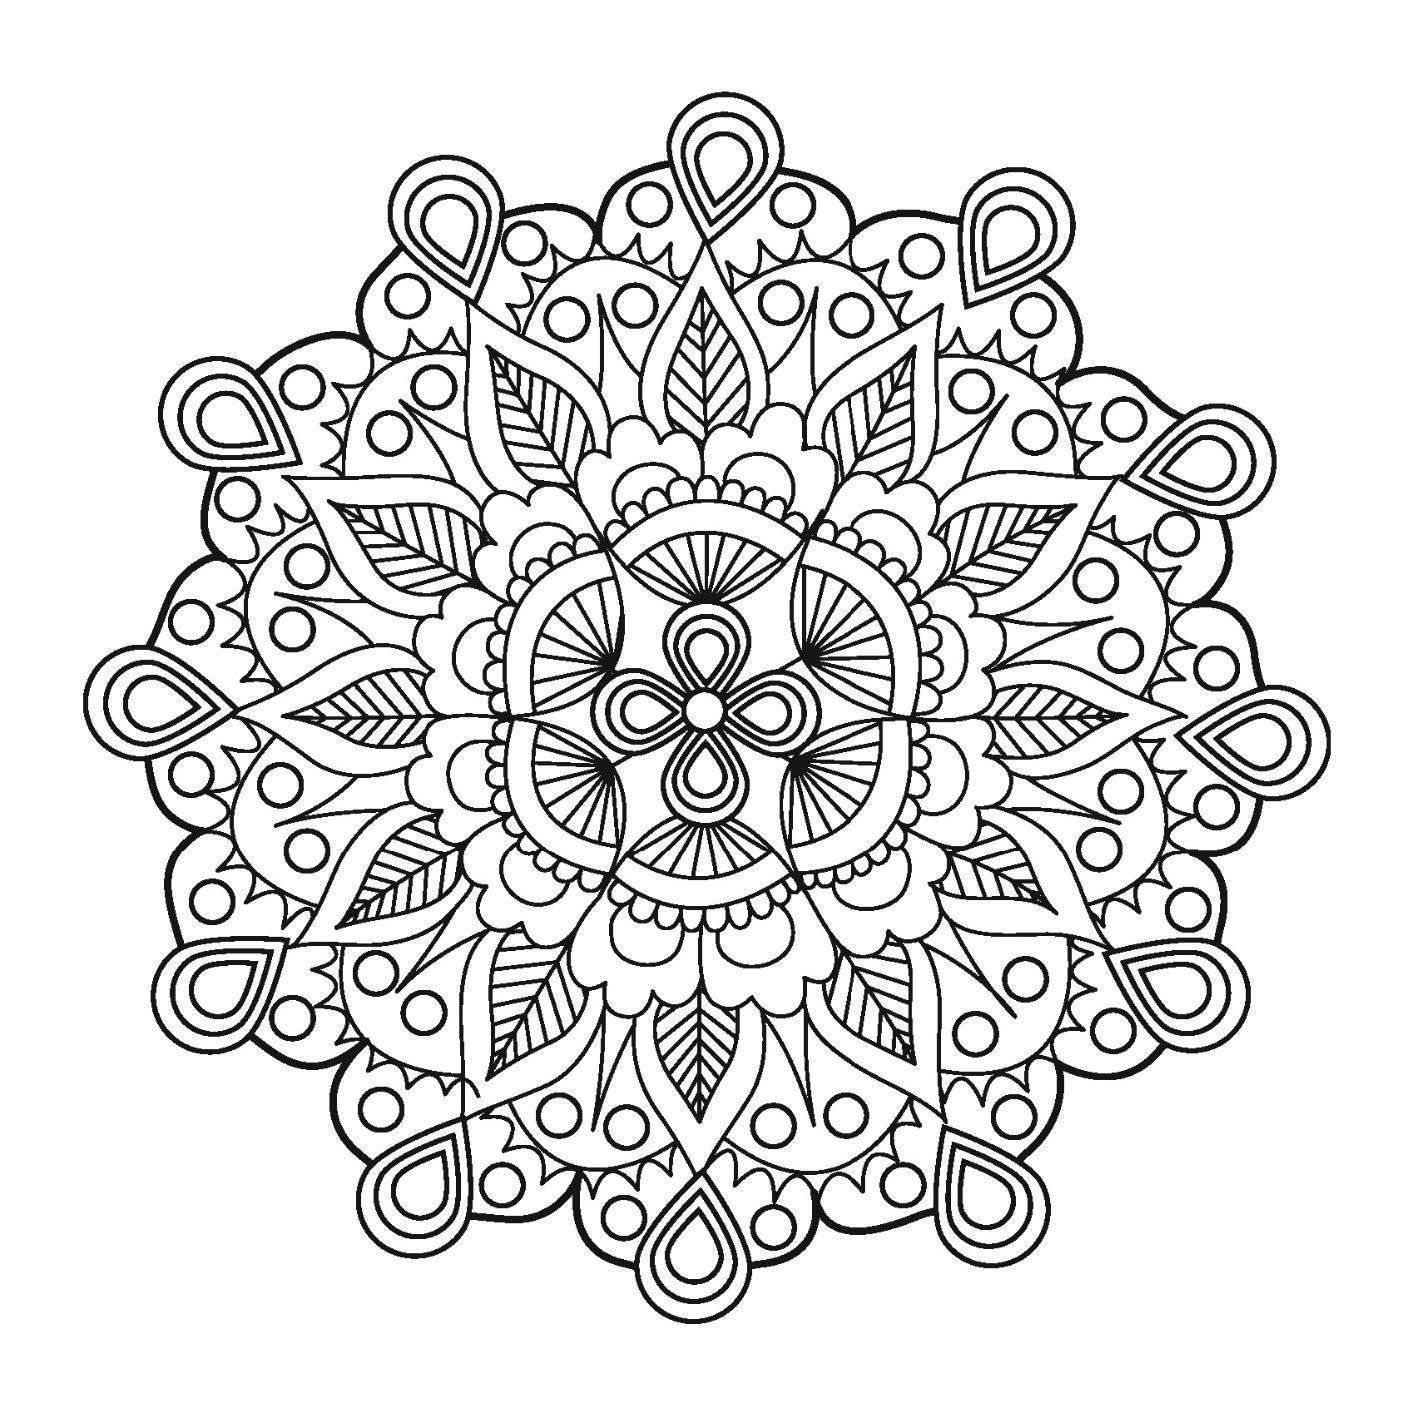 Mandalas For Beginners An Adult Coloring Book With Simple And Easy Designs Meditation